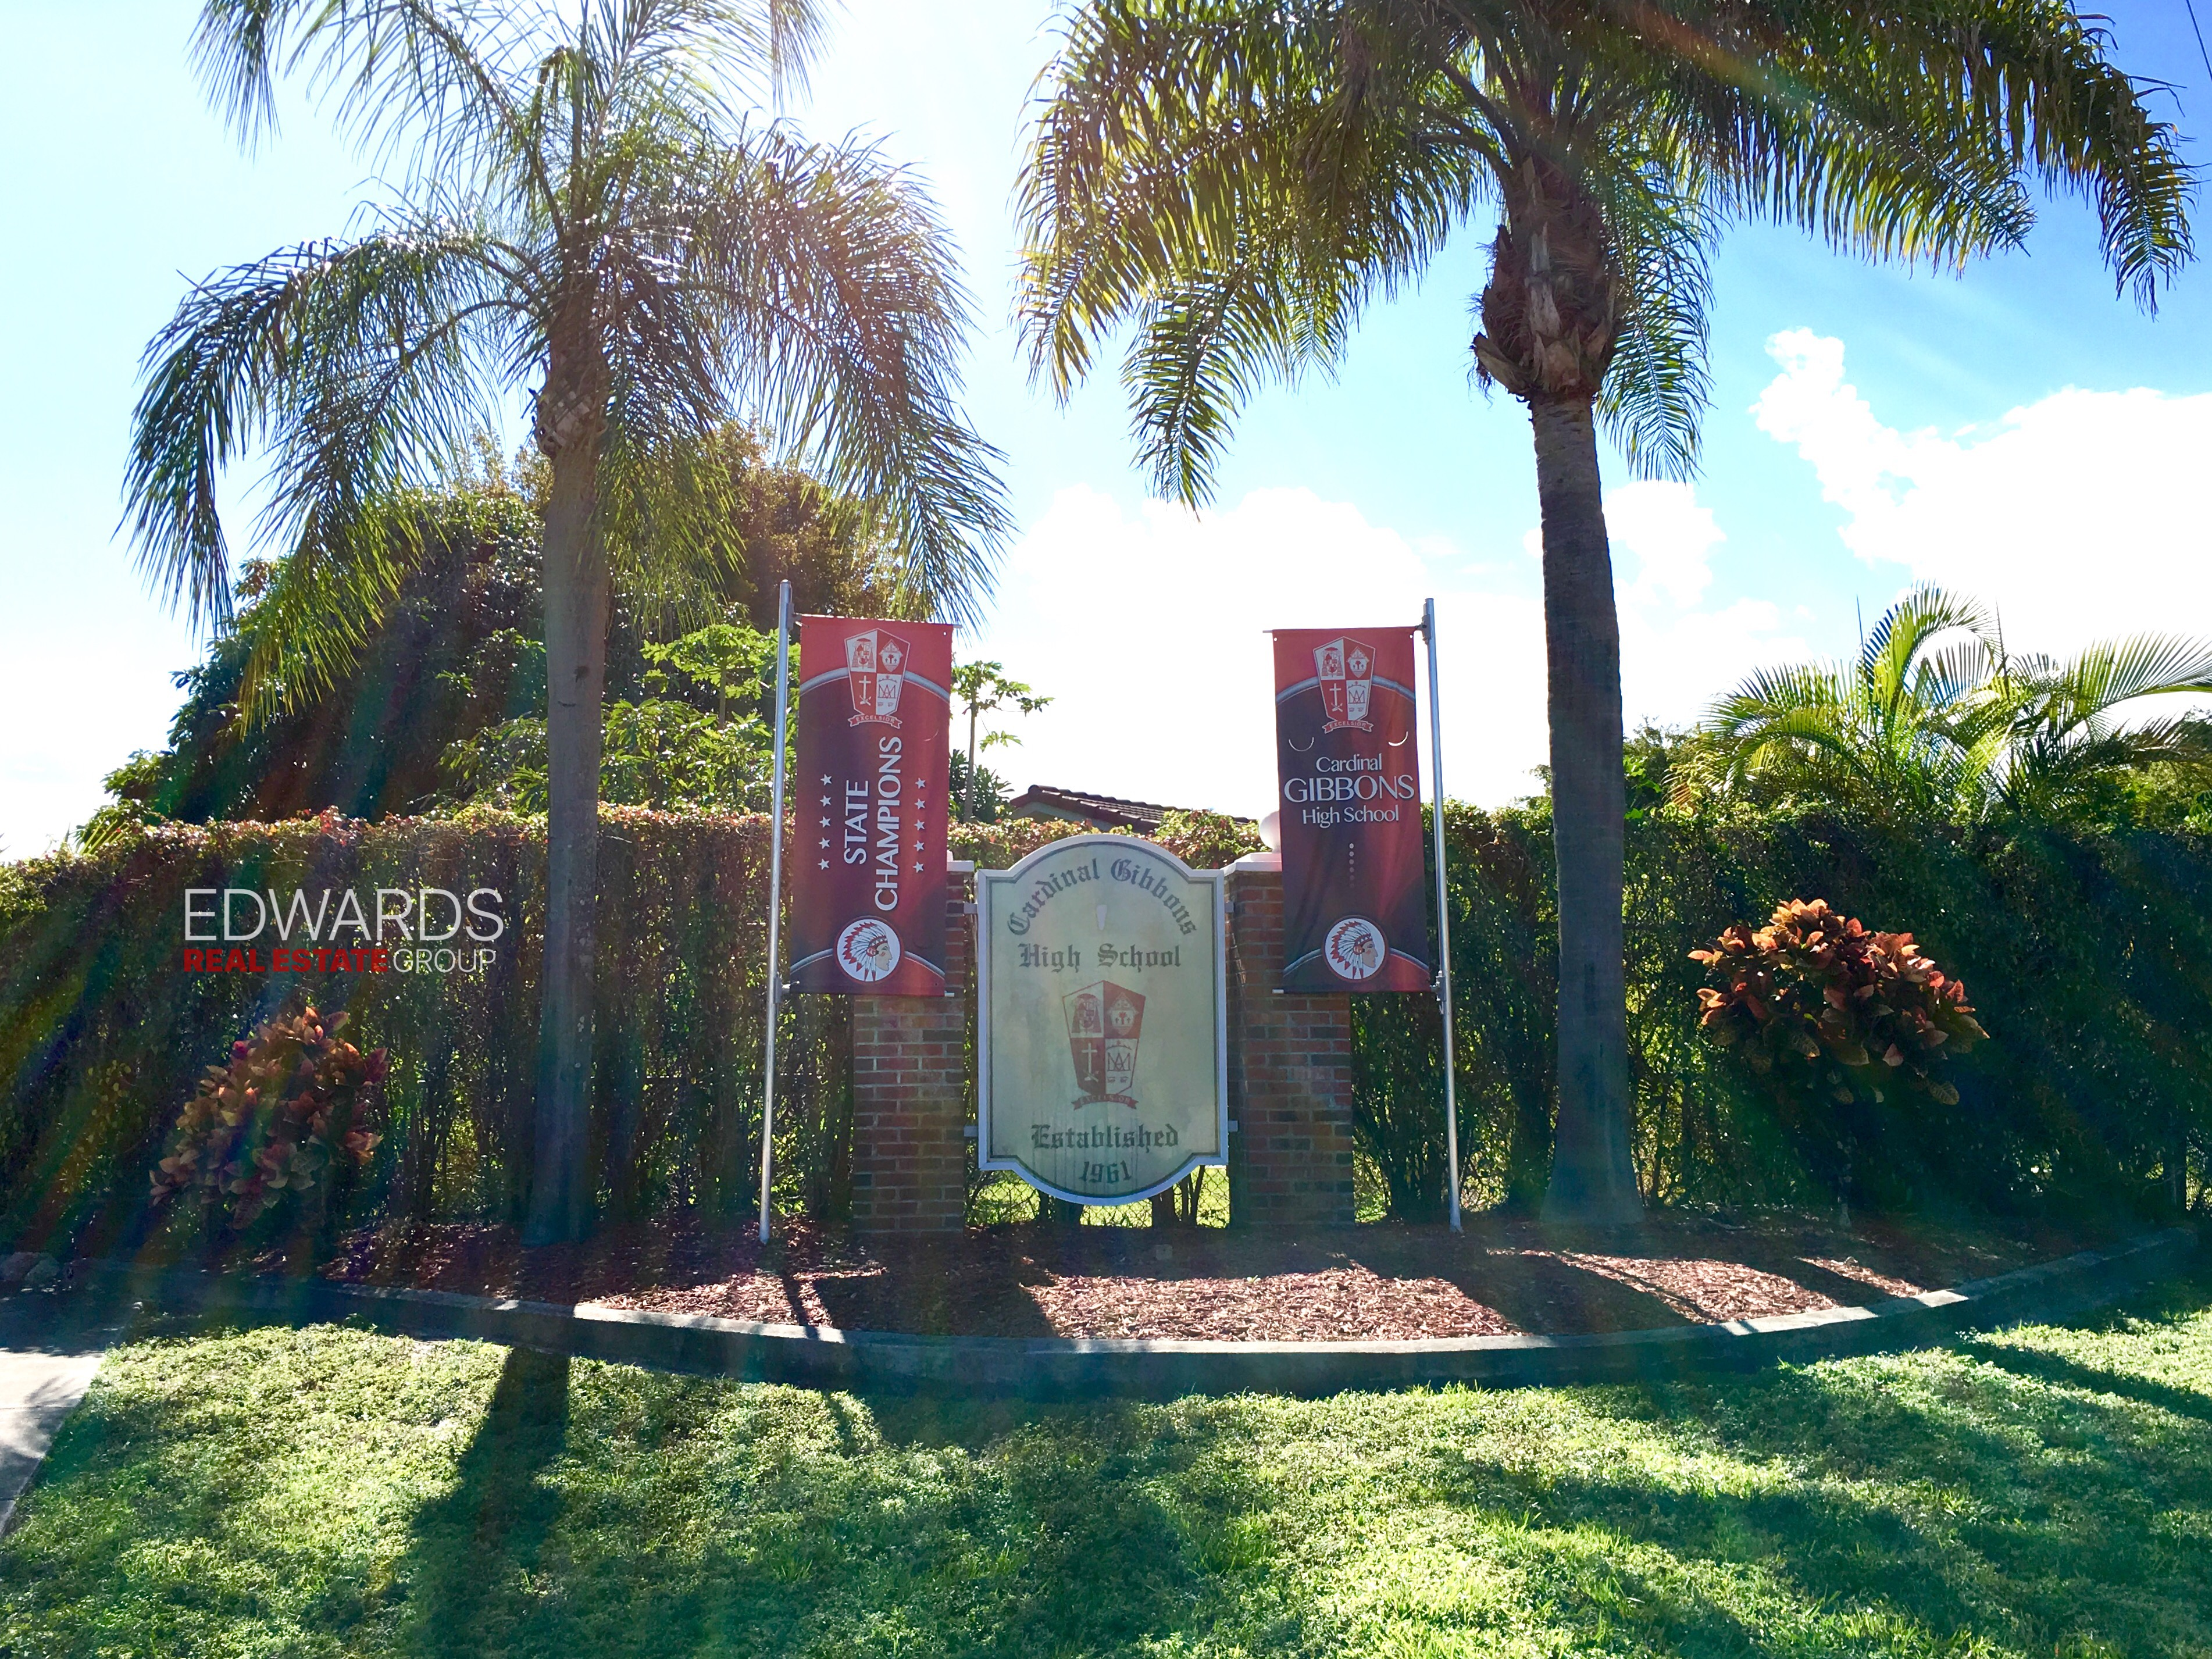 Cardinal Gibbons High School off of Bayview Drive in Coral Ridge Neighborhood of Fort Lauderadle